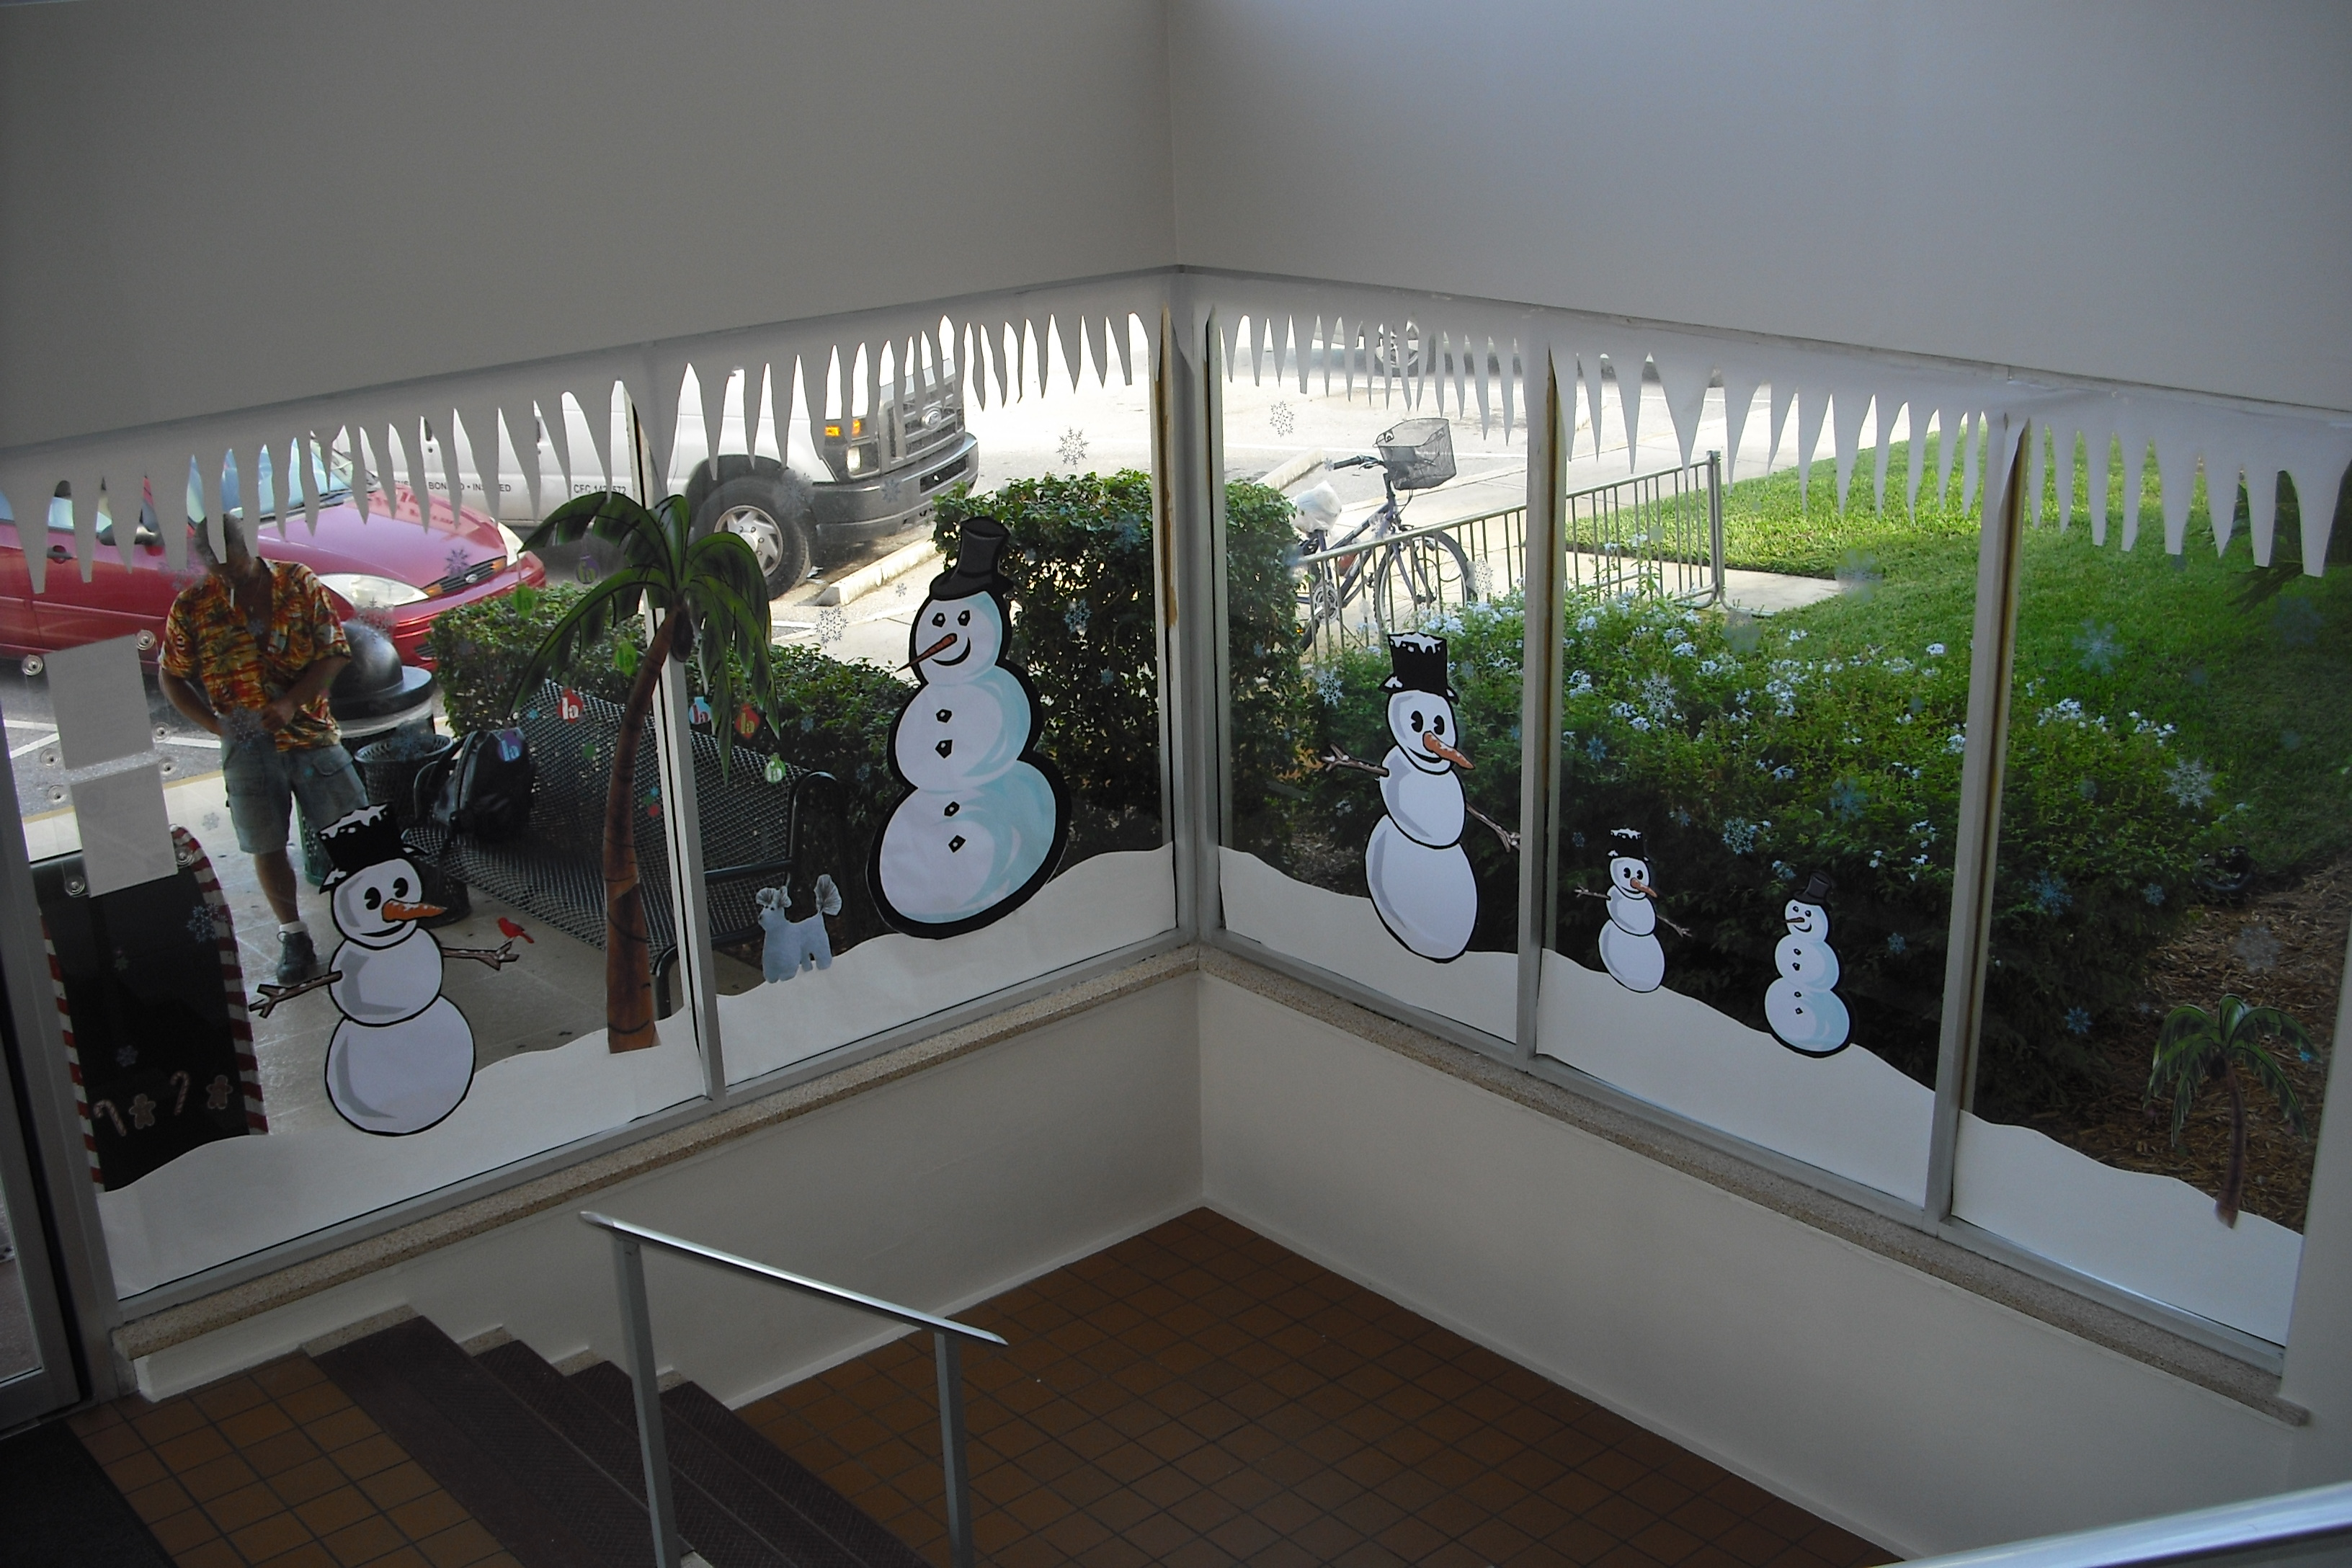 The snowmen decorations in the library look out to the warmer weather outside